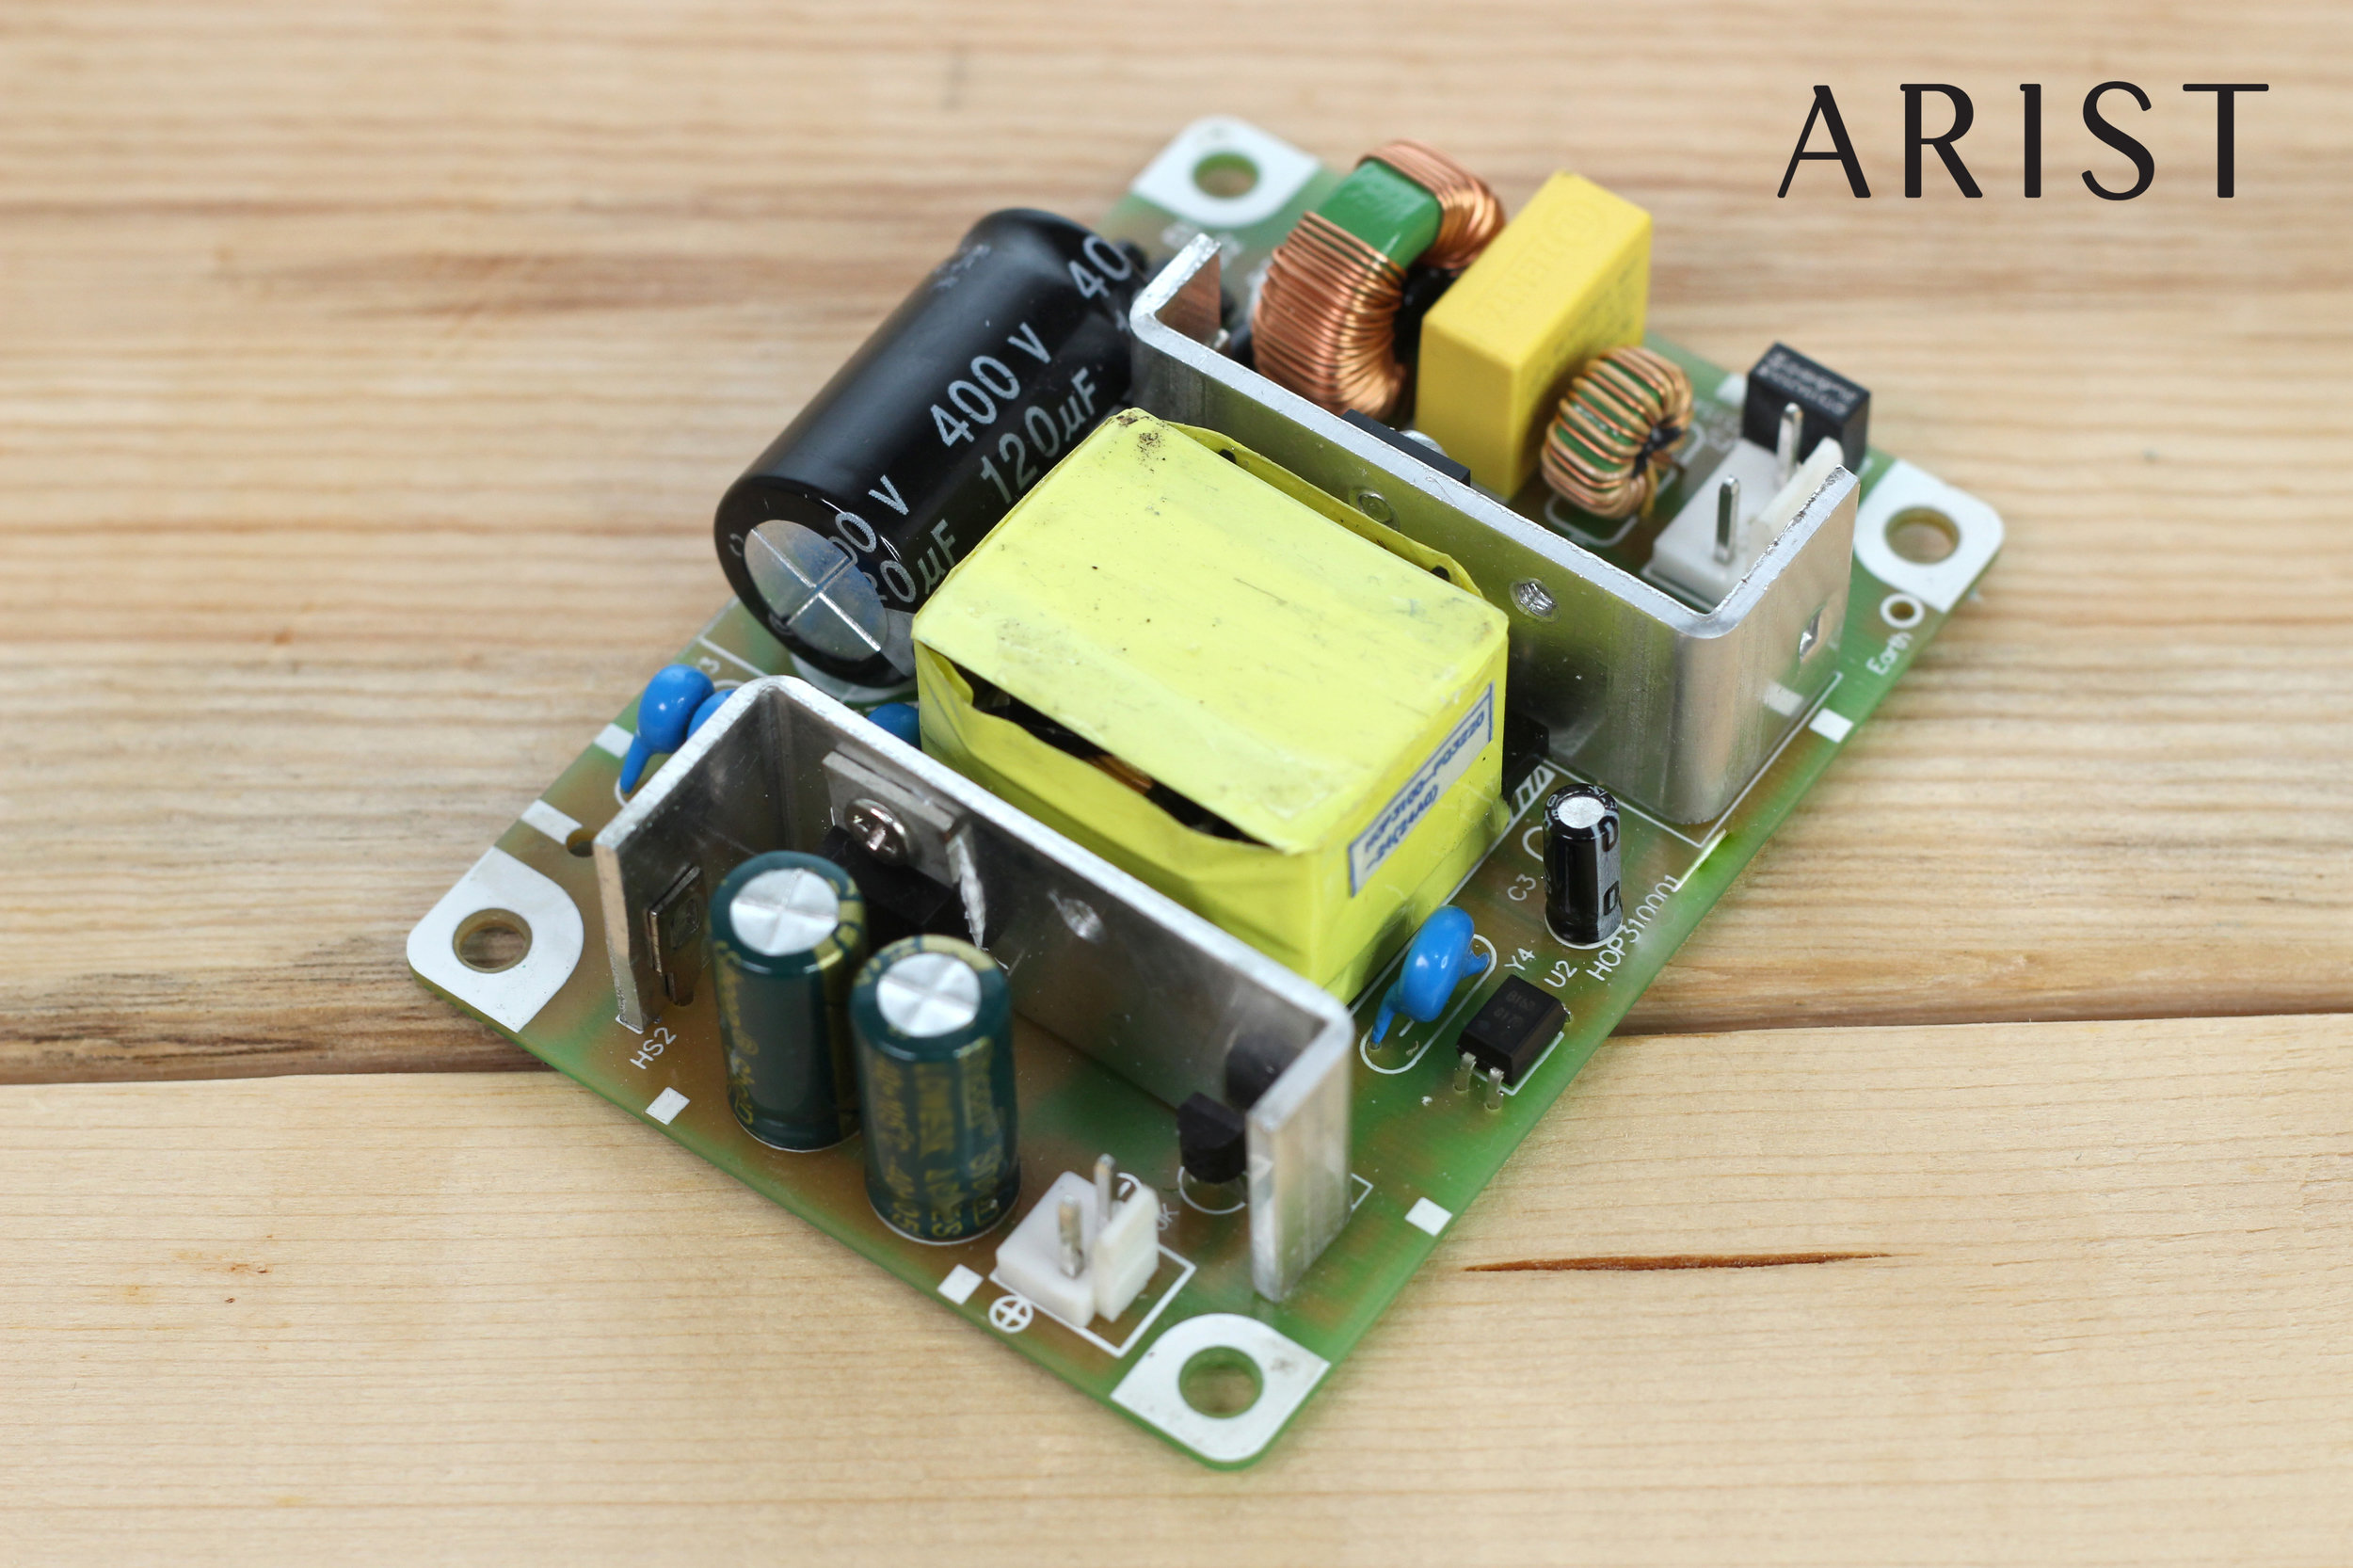 Arist's Switch-Mode Power Supply (SMPS). Looks like a mini power plant.